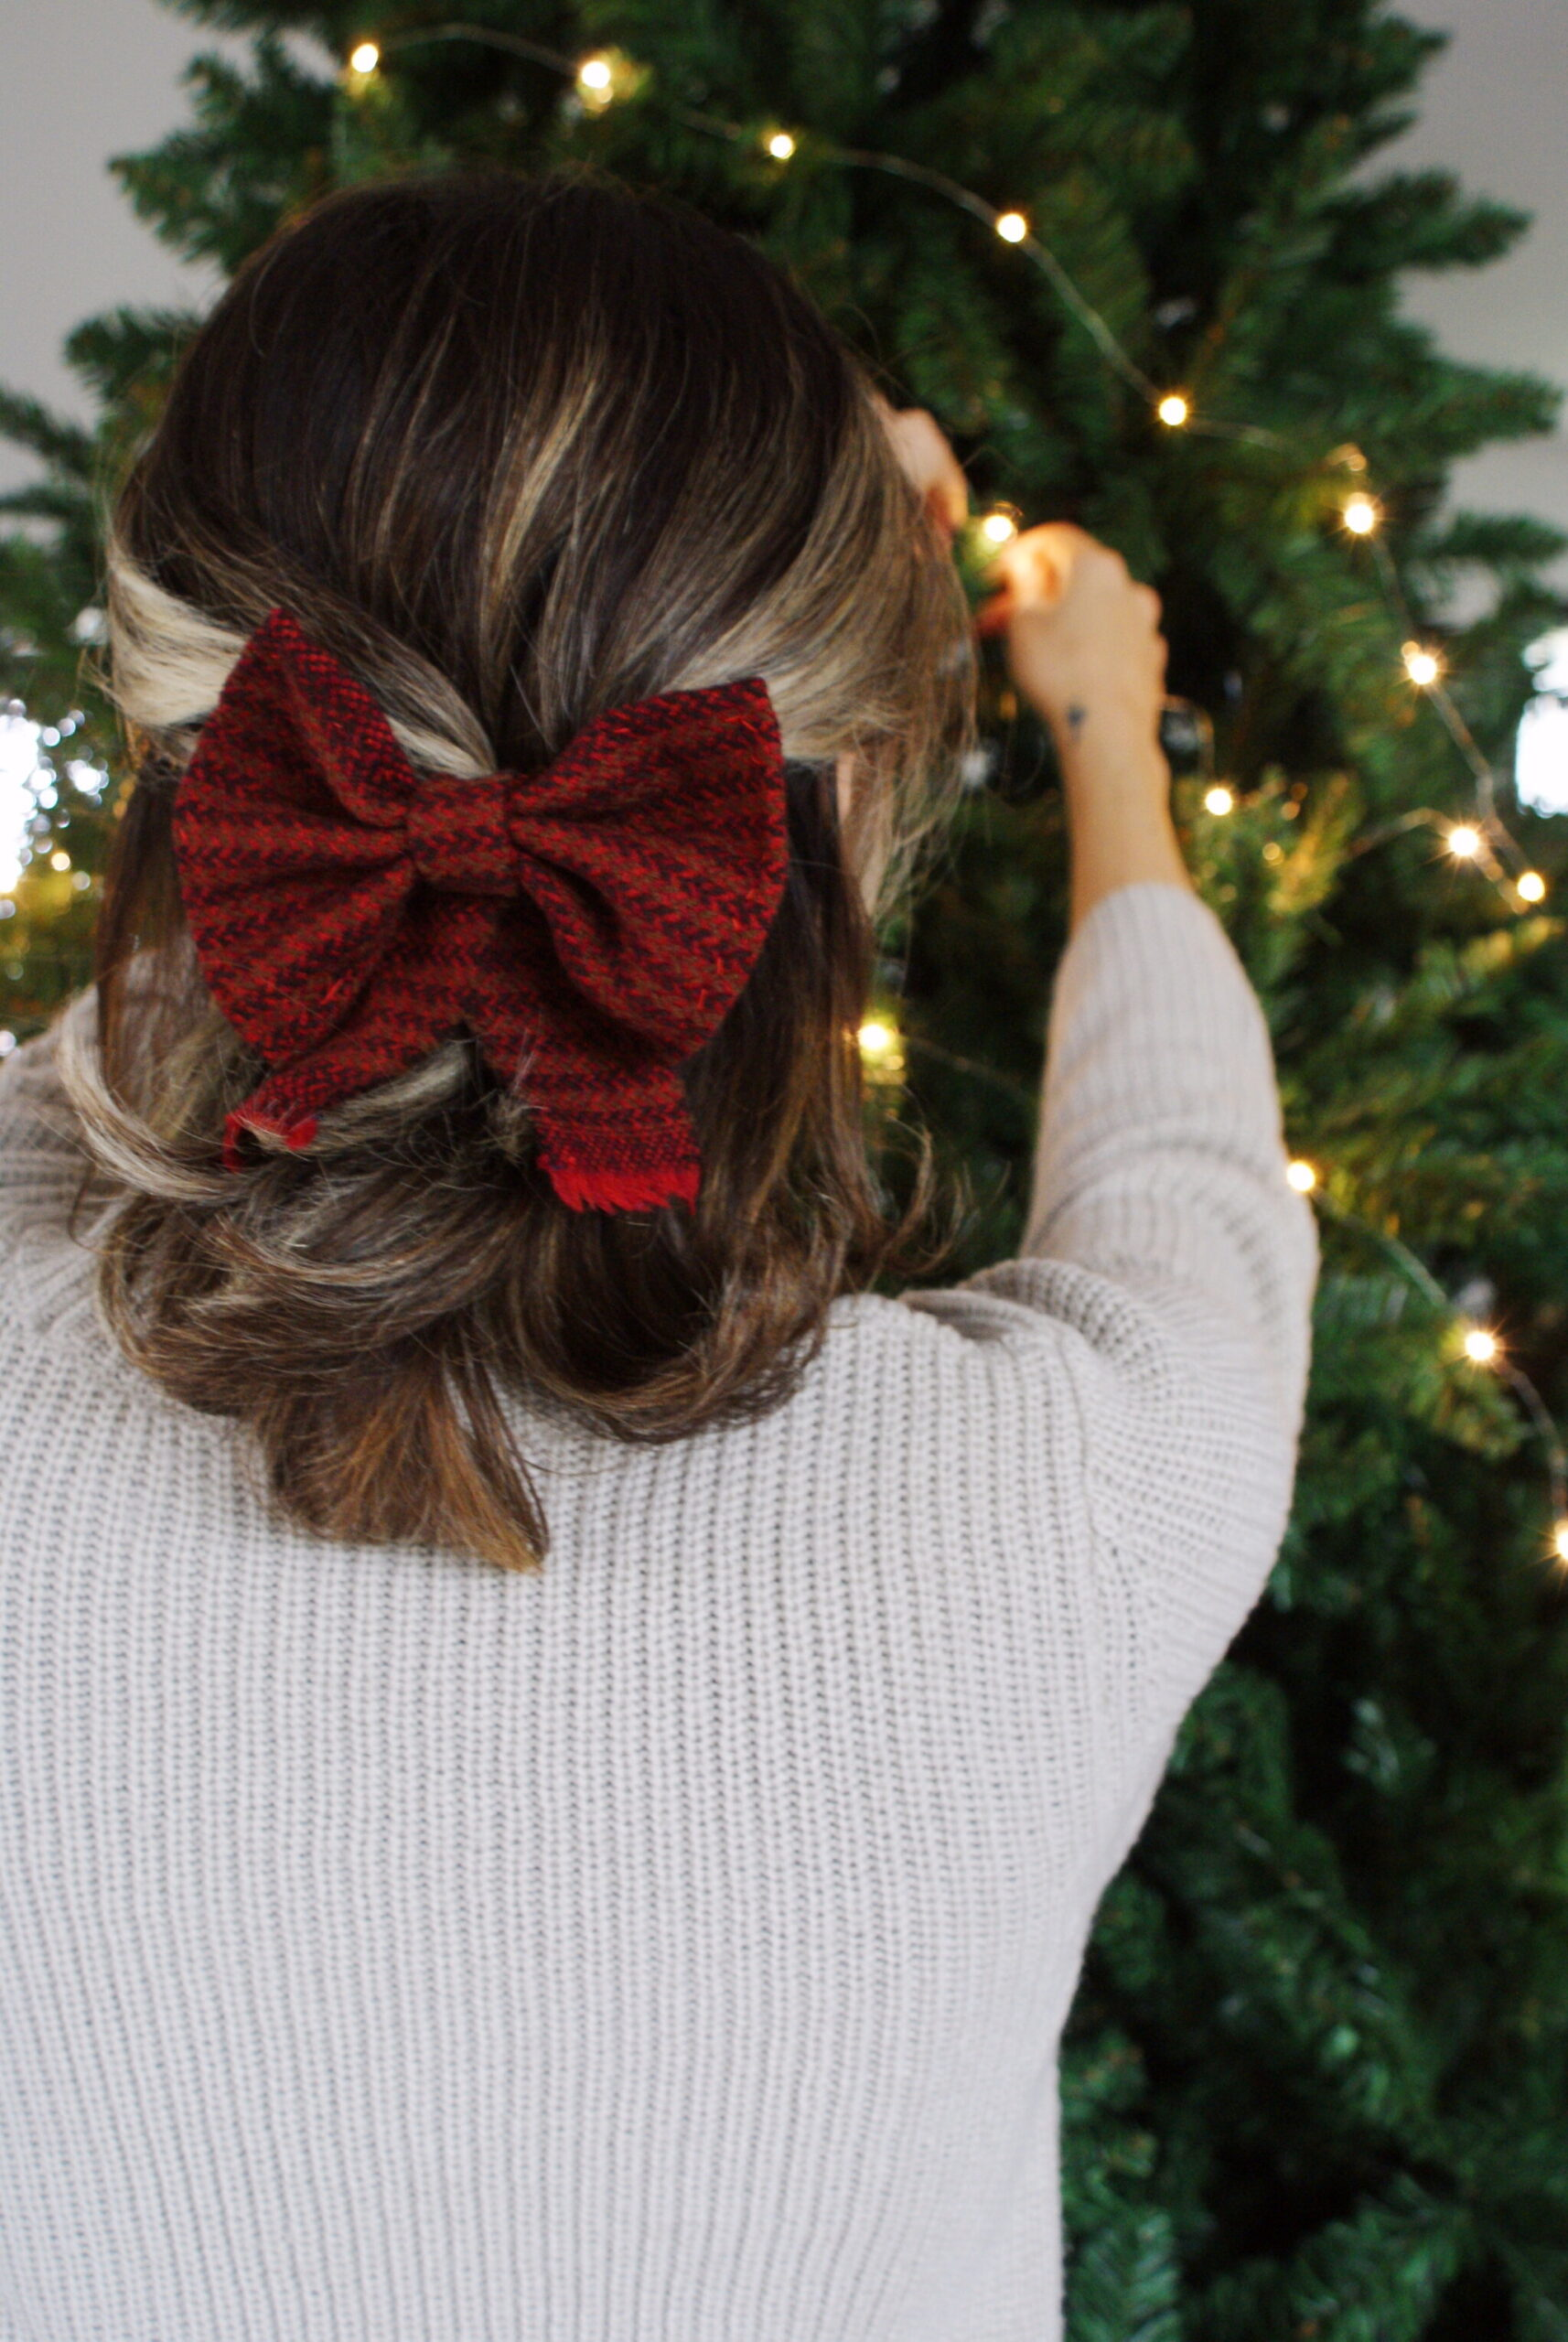 diy tartan bow hair clip easy handmade accessory festive outfits christmas tutorial sew